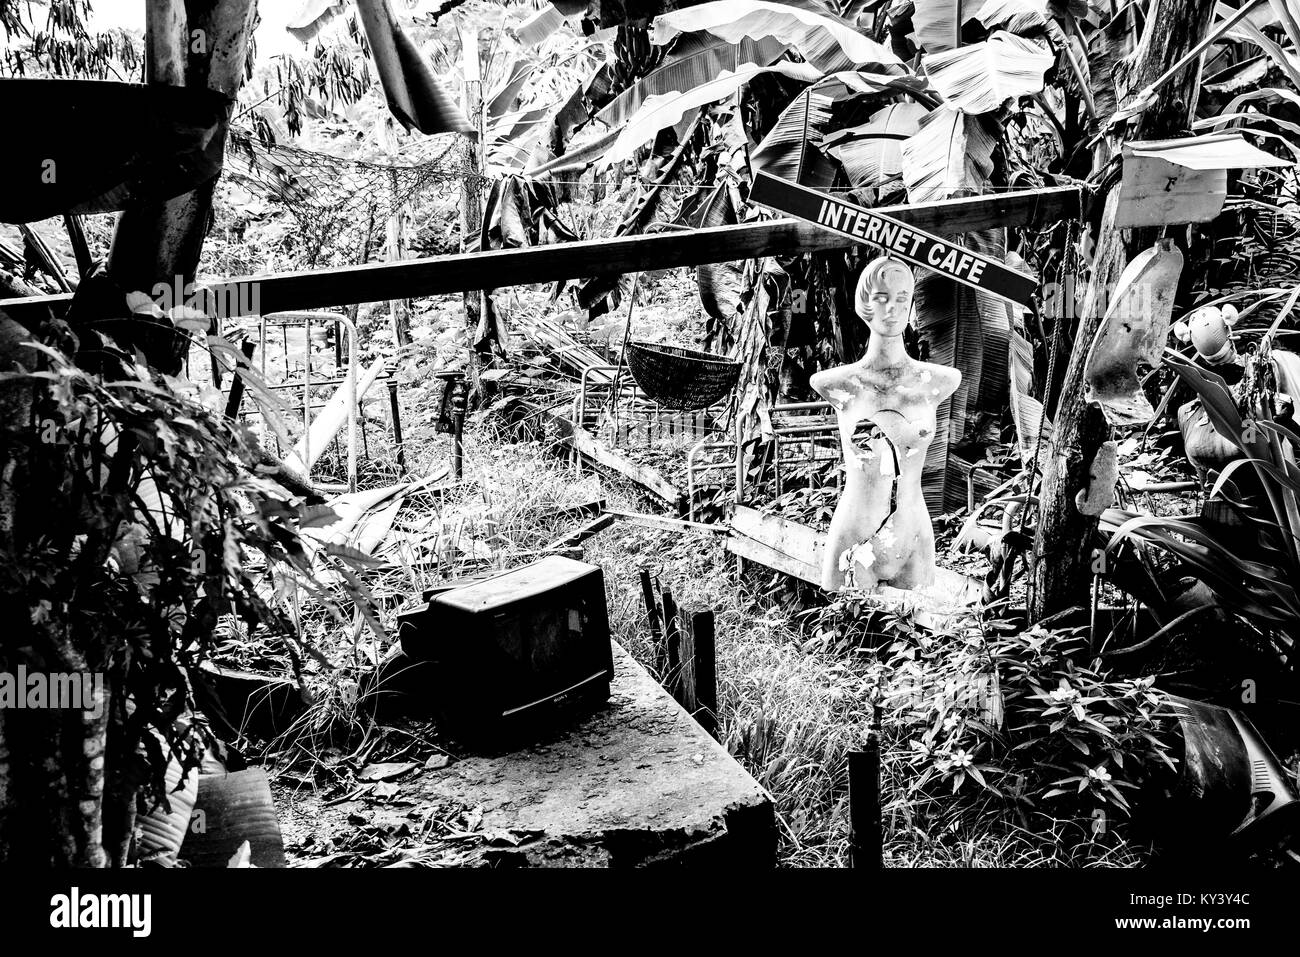 Internet cafe in the jungle, black and white - Stock Image